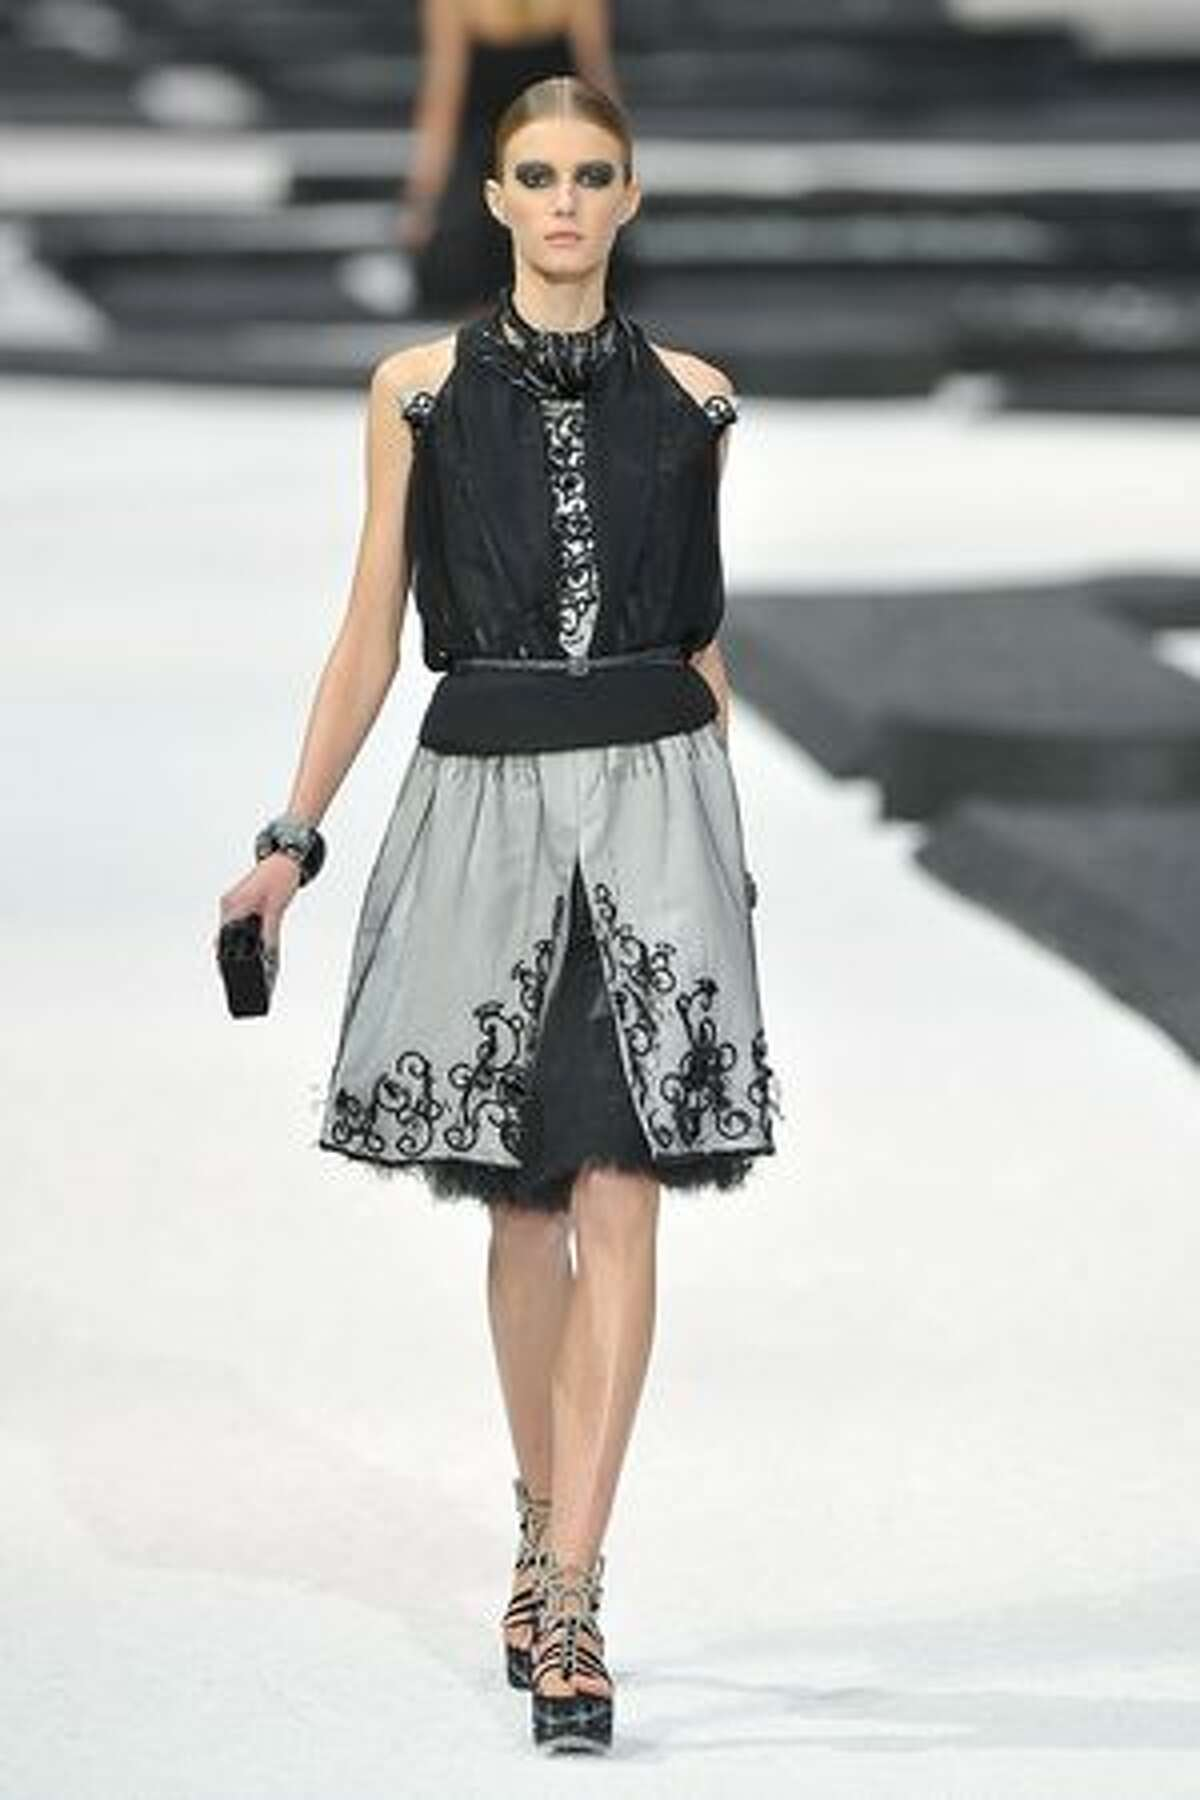 A model walks the runway during the Chanel Ready to Wear Spring/Summer 2011 show during Paris Fashion Week in Paris, France.